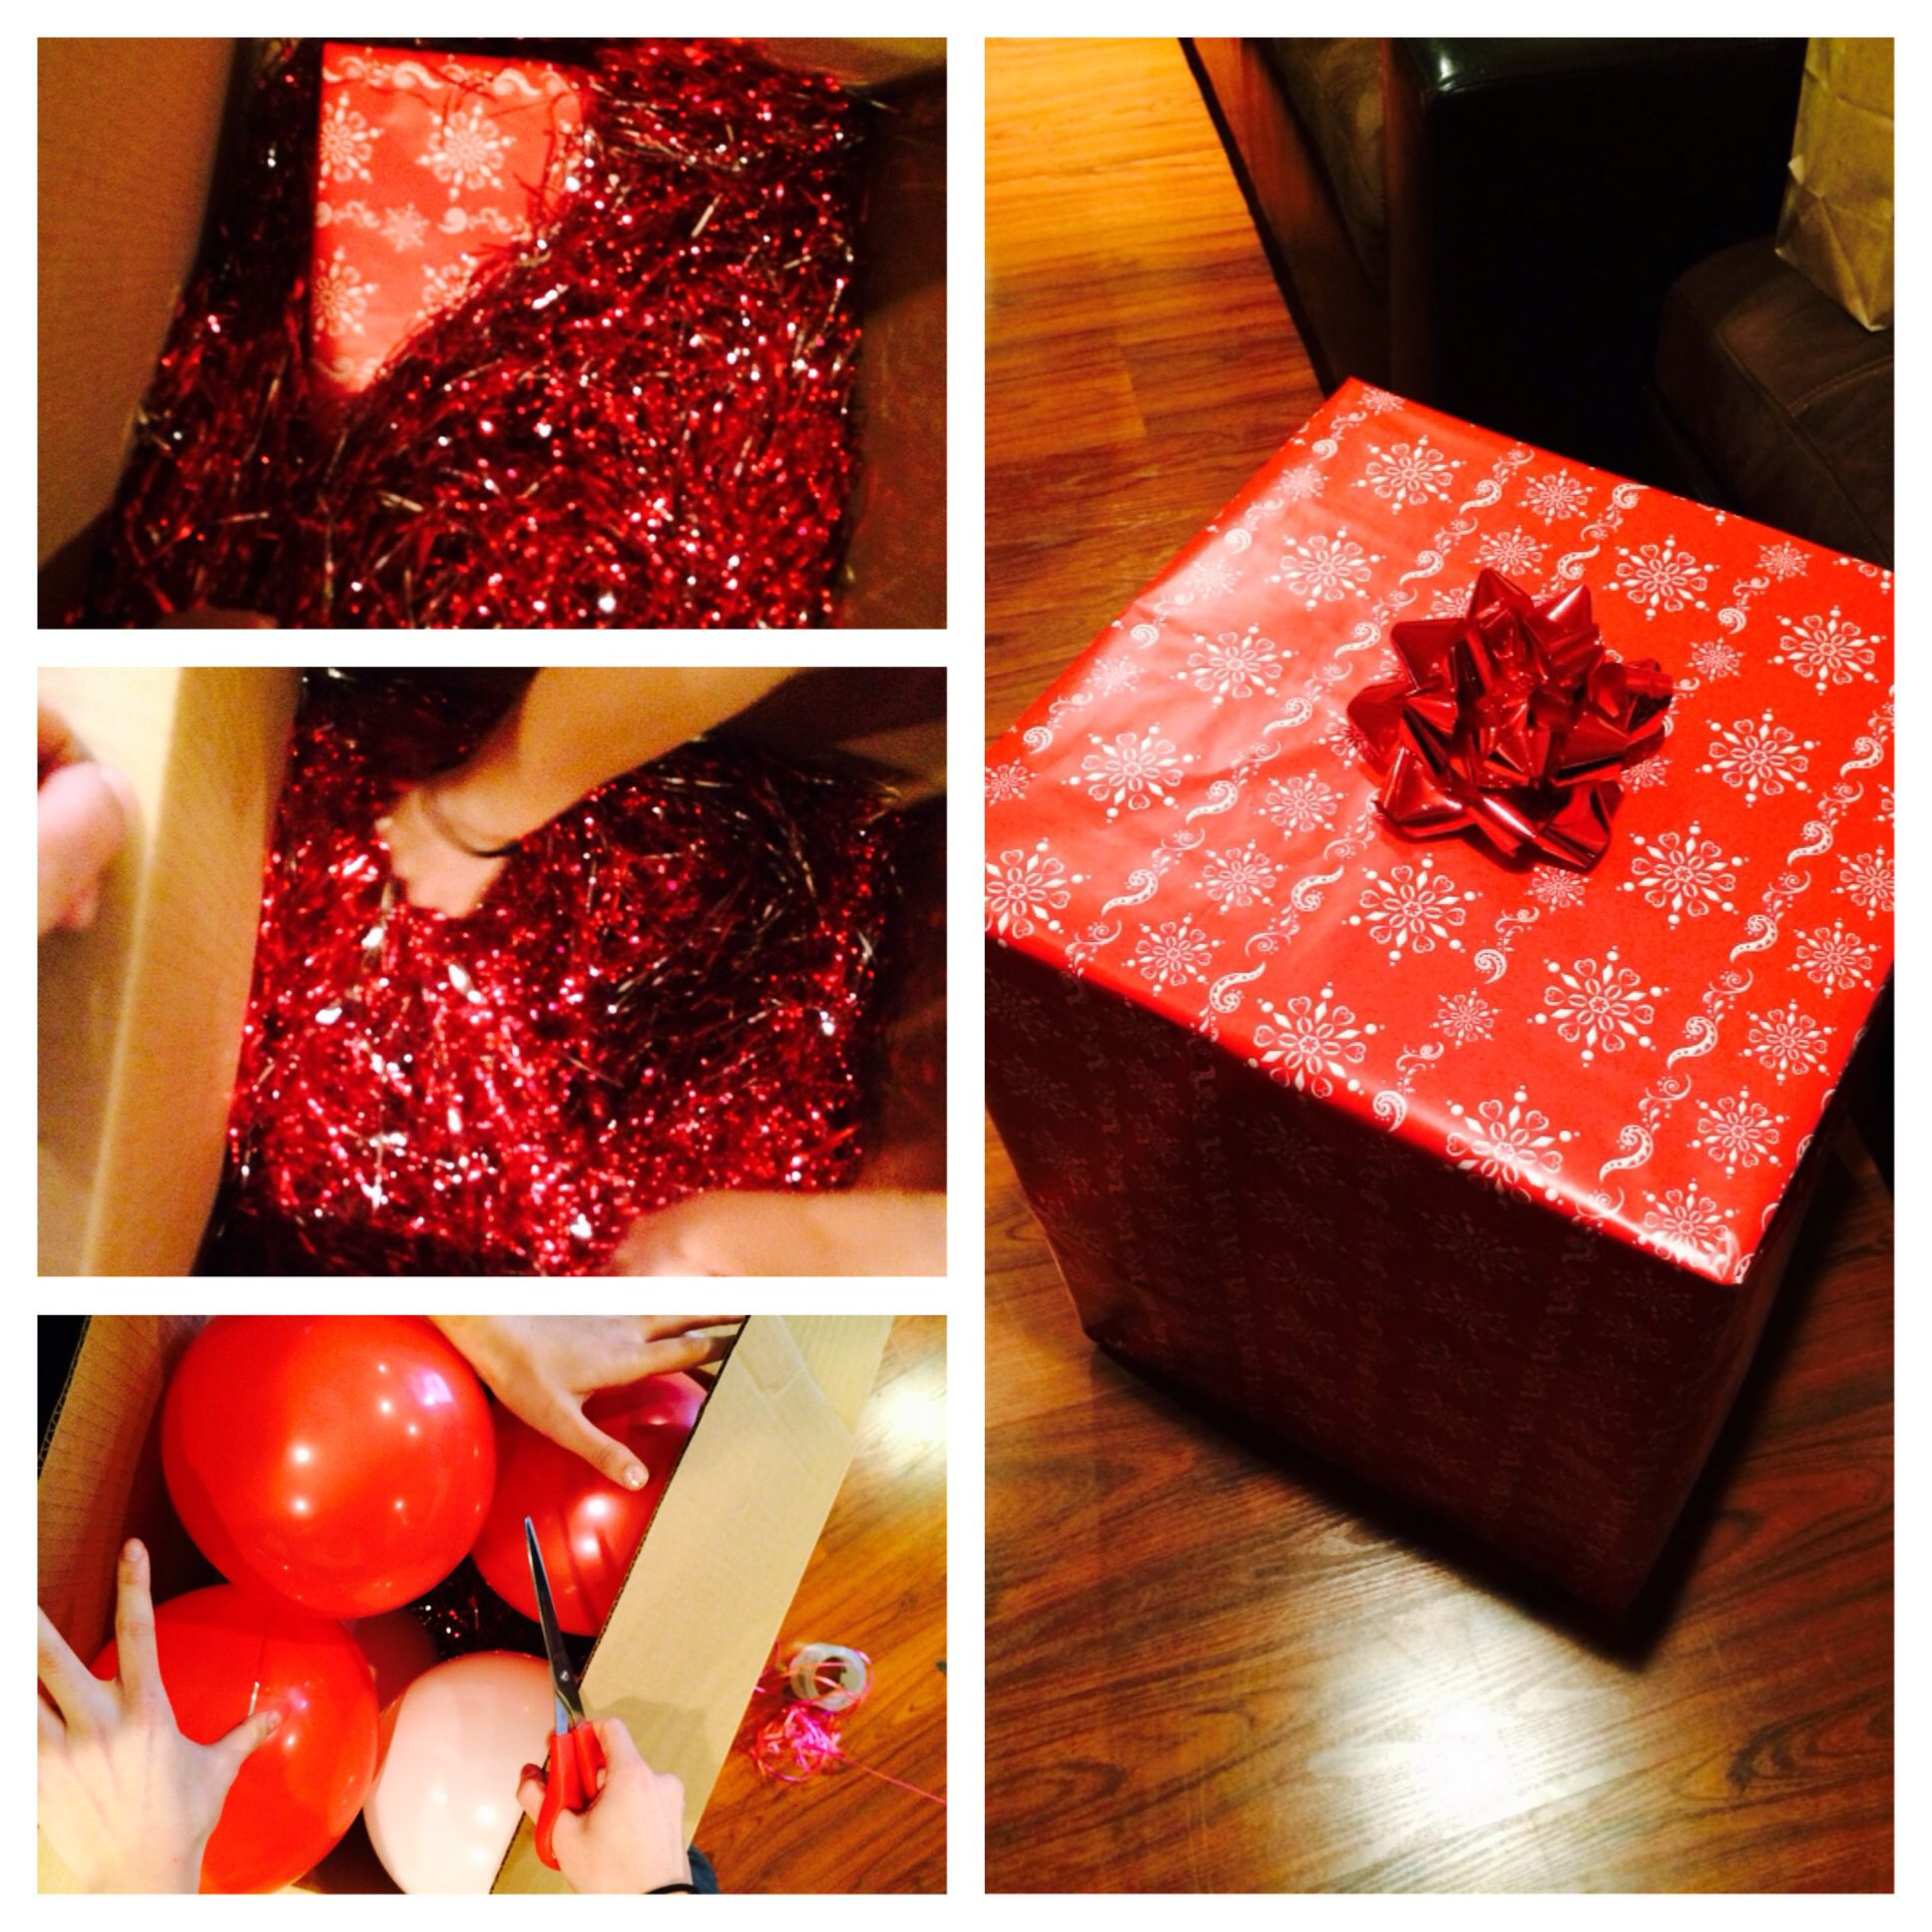 Birthday Surprise For Best Friend Get A Big Box Fill It With The